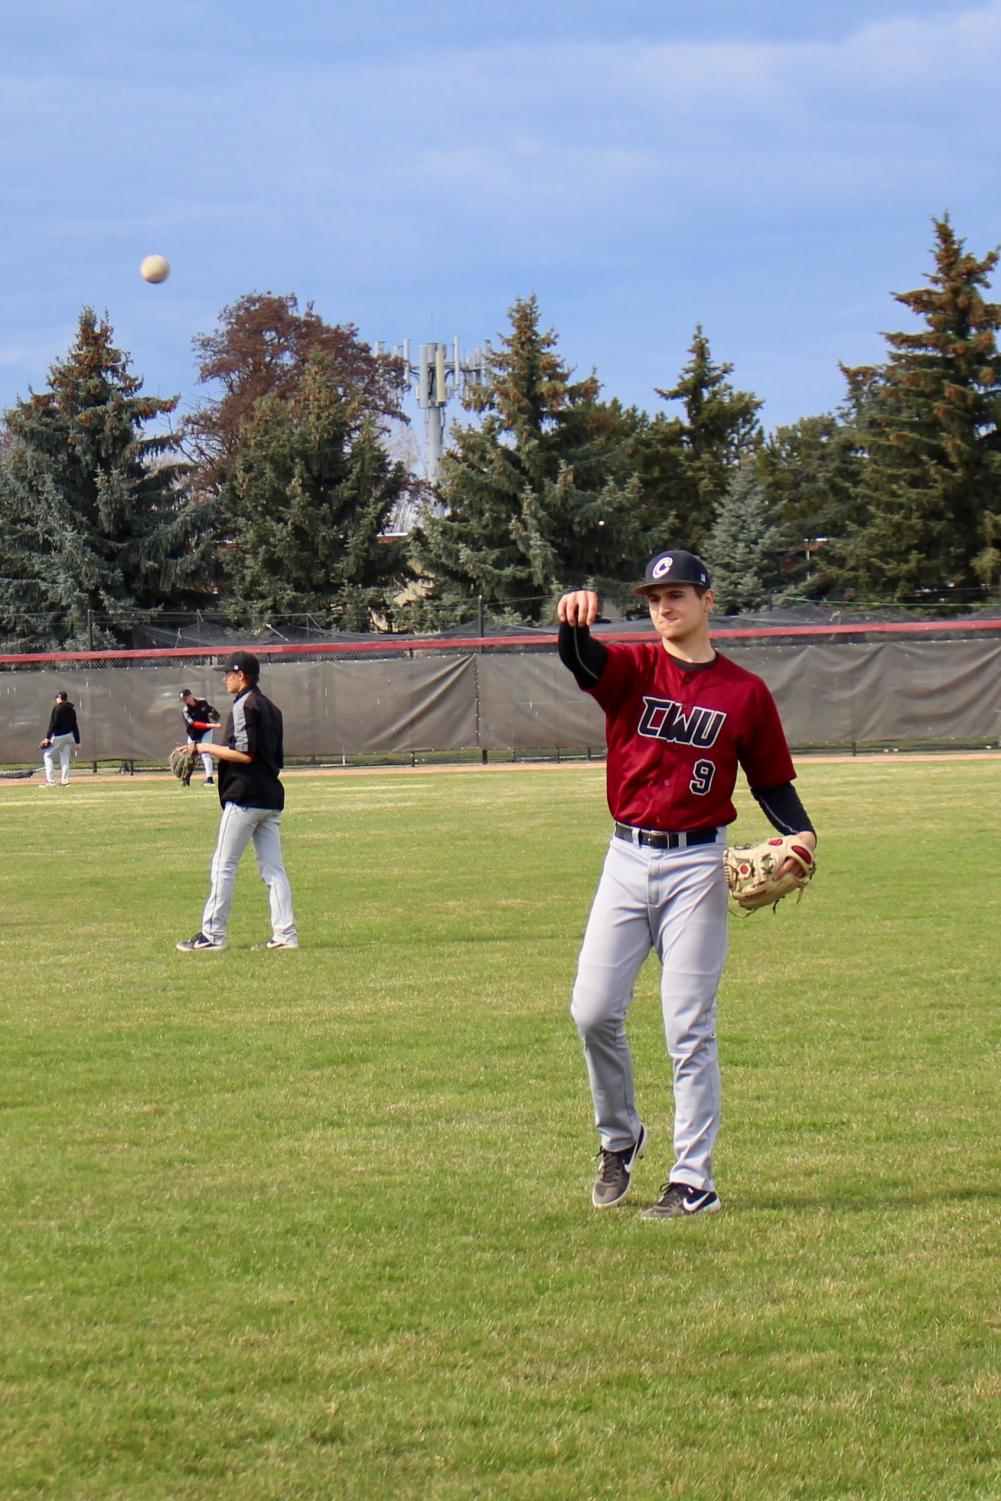 Sophomore Infielder Mitch Lesmeister warms up during practice. Soft toss gets the players arms stretched out.